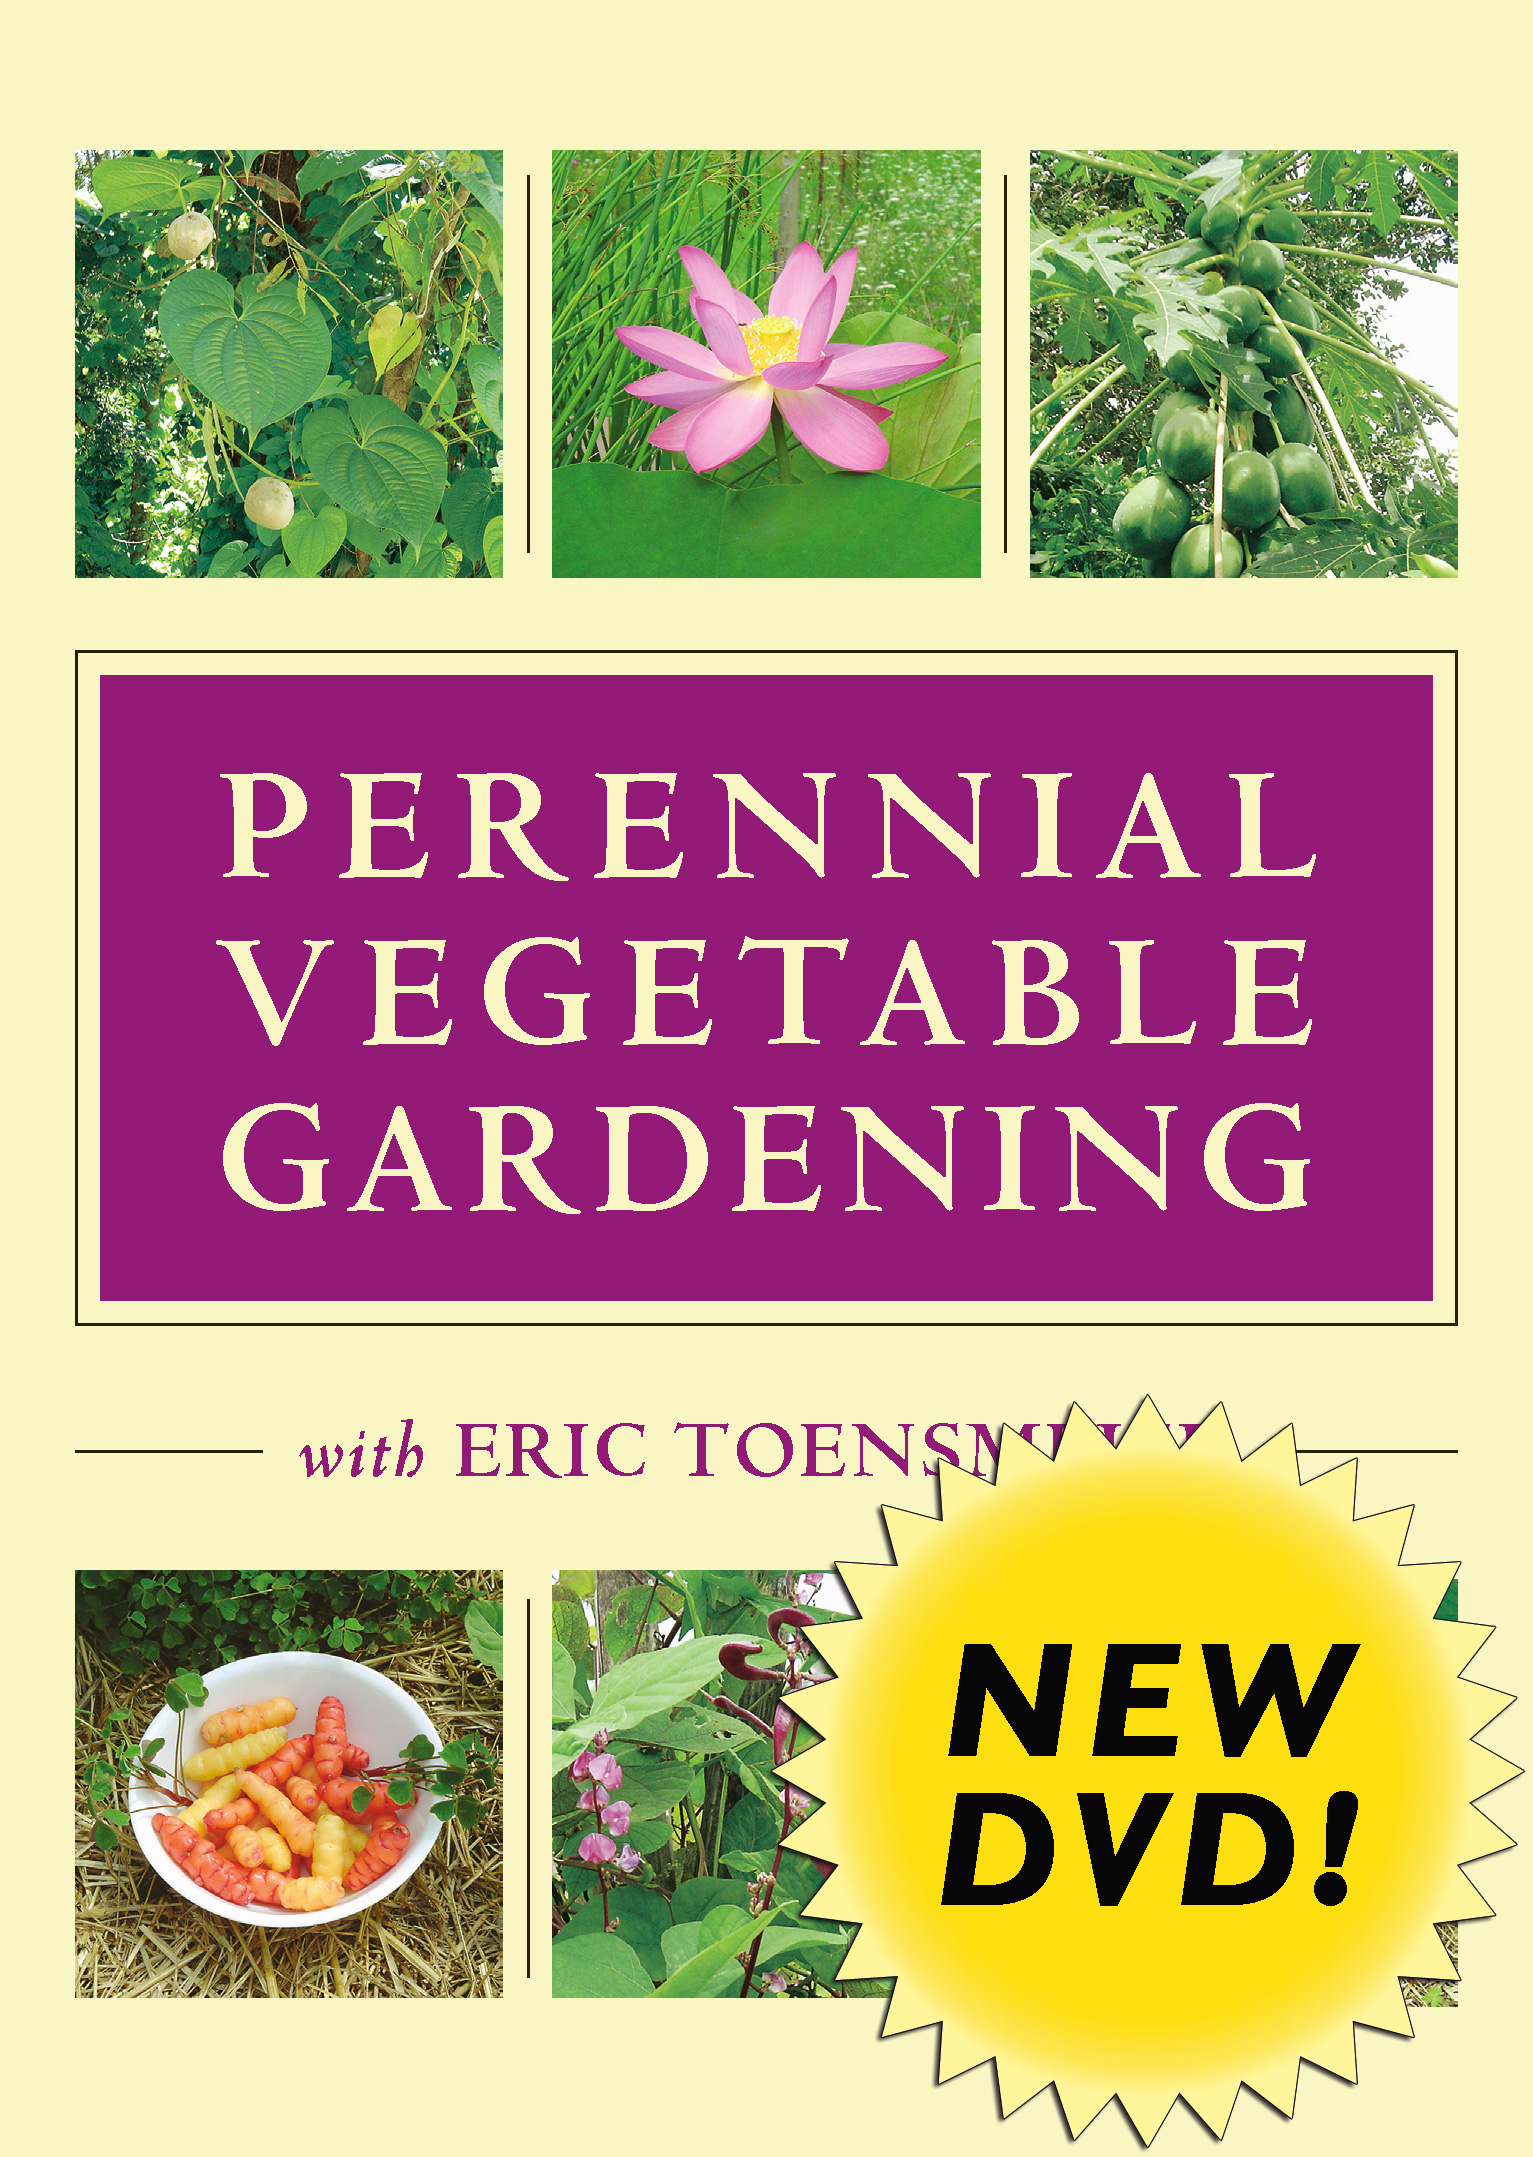 Perennial Vegetable Gardening with Eric Toensmeier (DVD) Cover